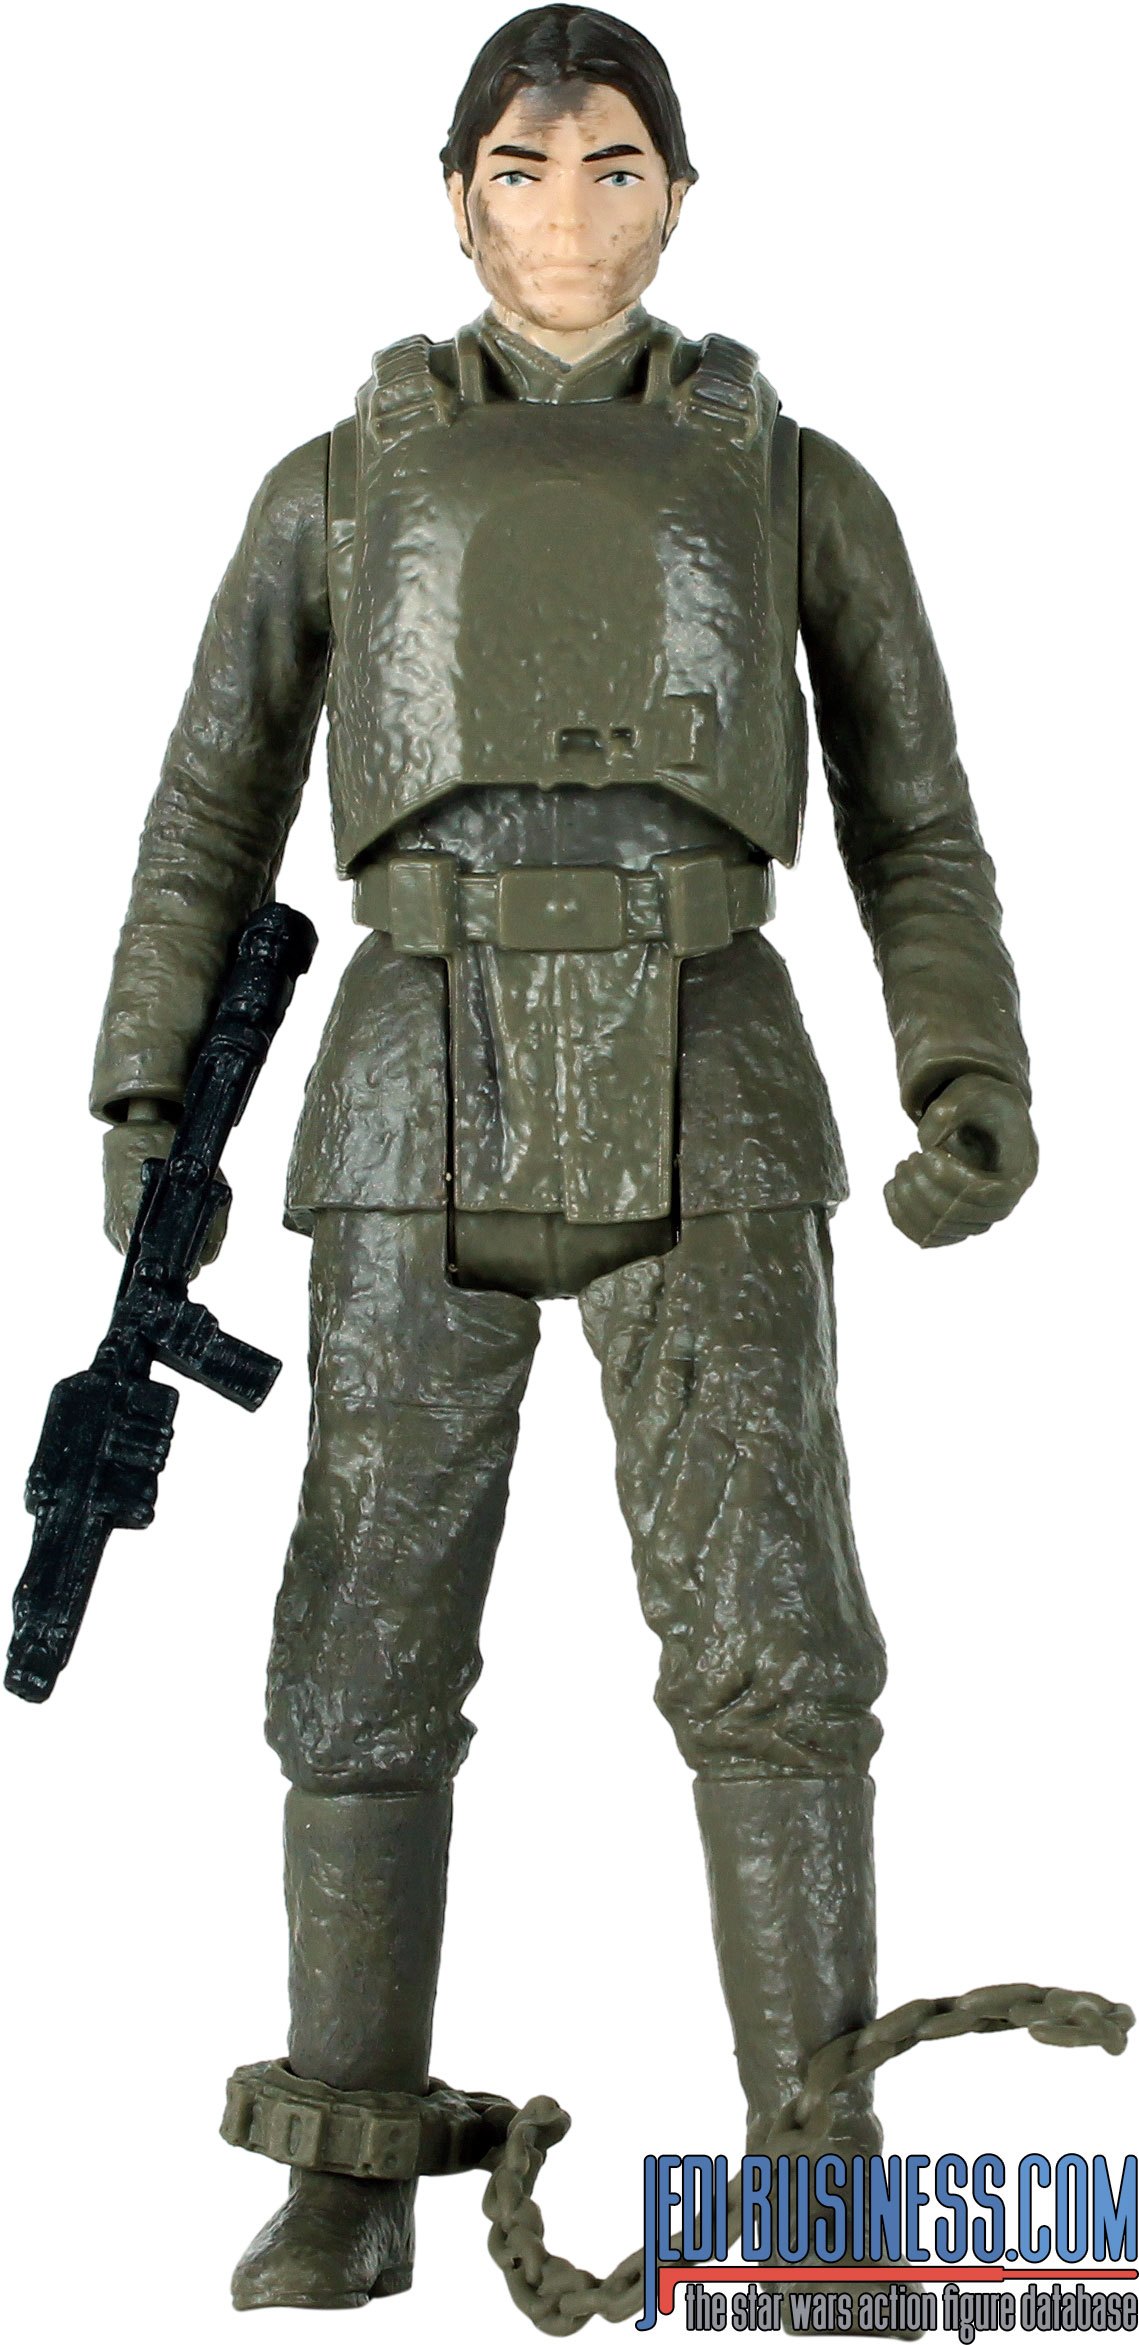 Han Solo, 2-Pack #4 With Chewbacca (Mimban)